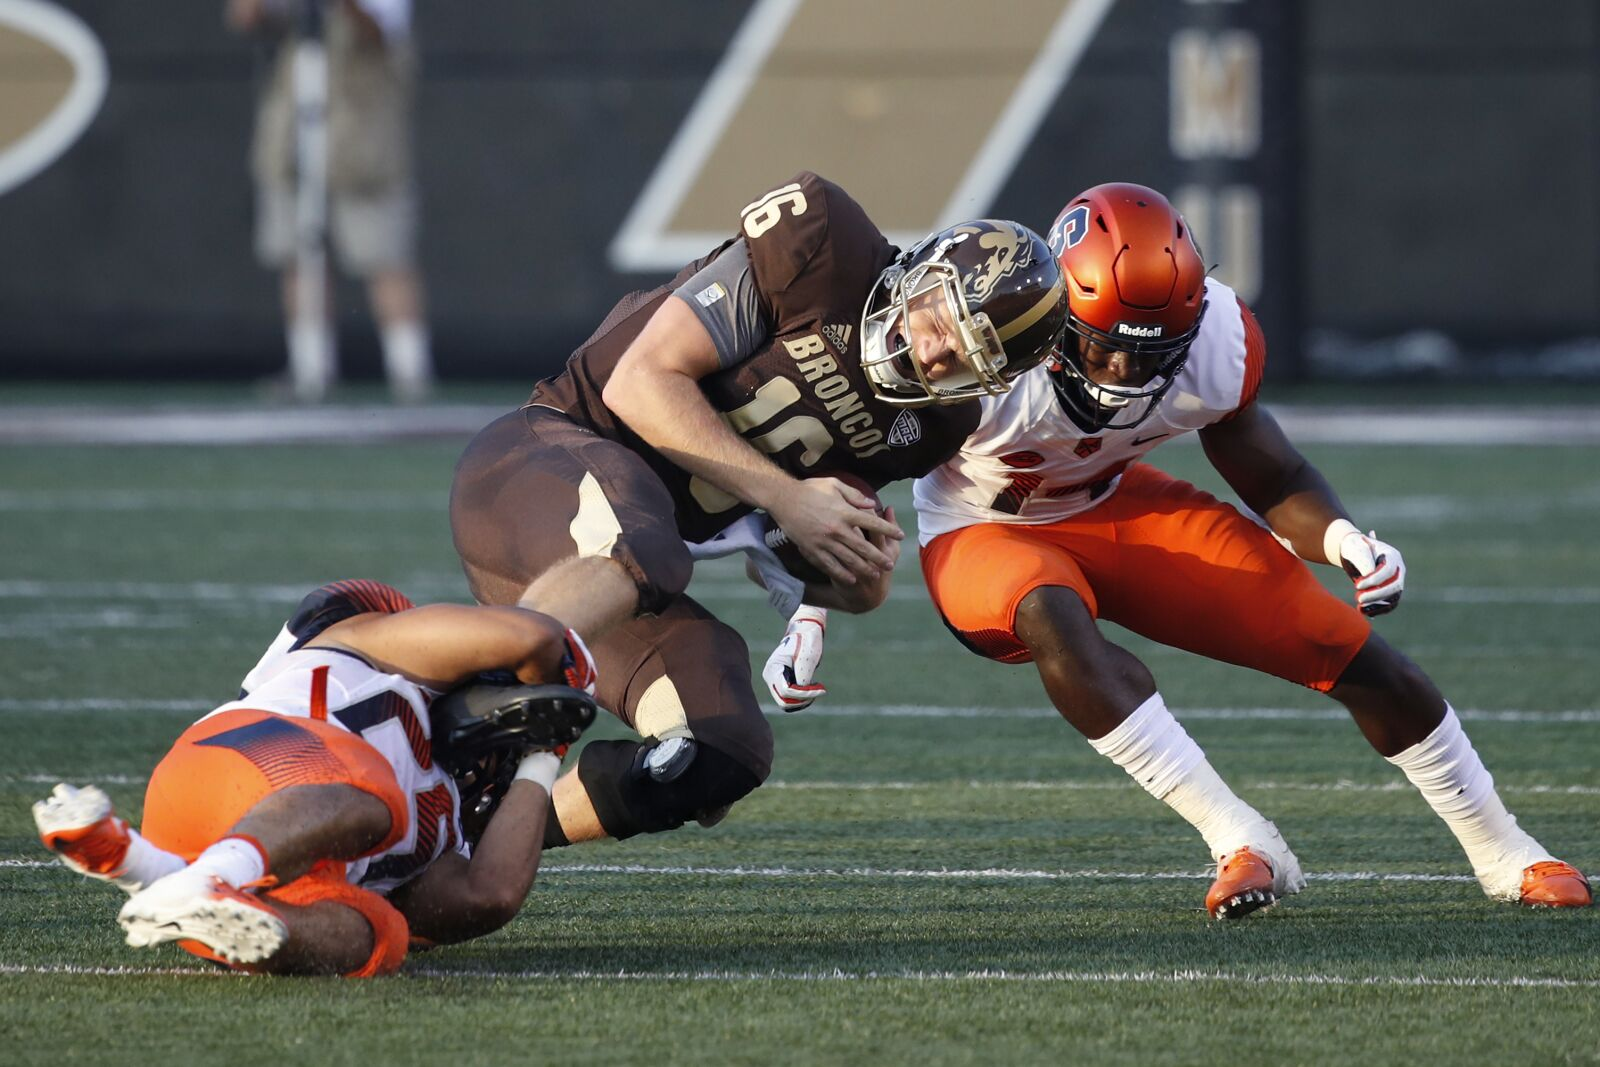 Syracuse Football: Best Bets vs Western Michigan and Week 4 Bets